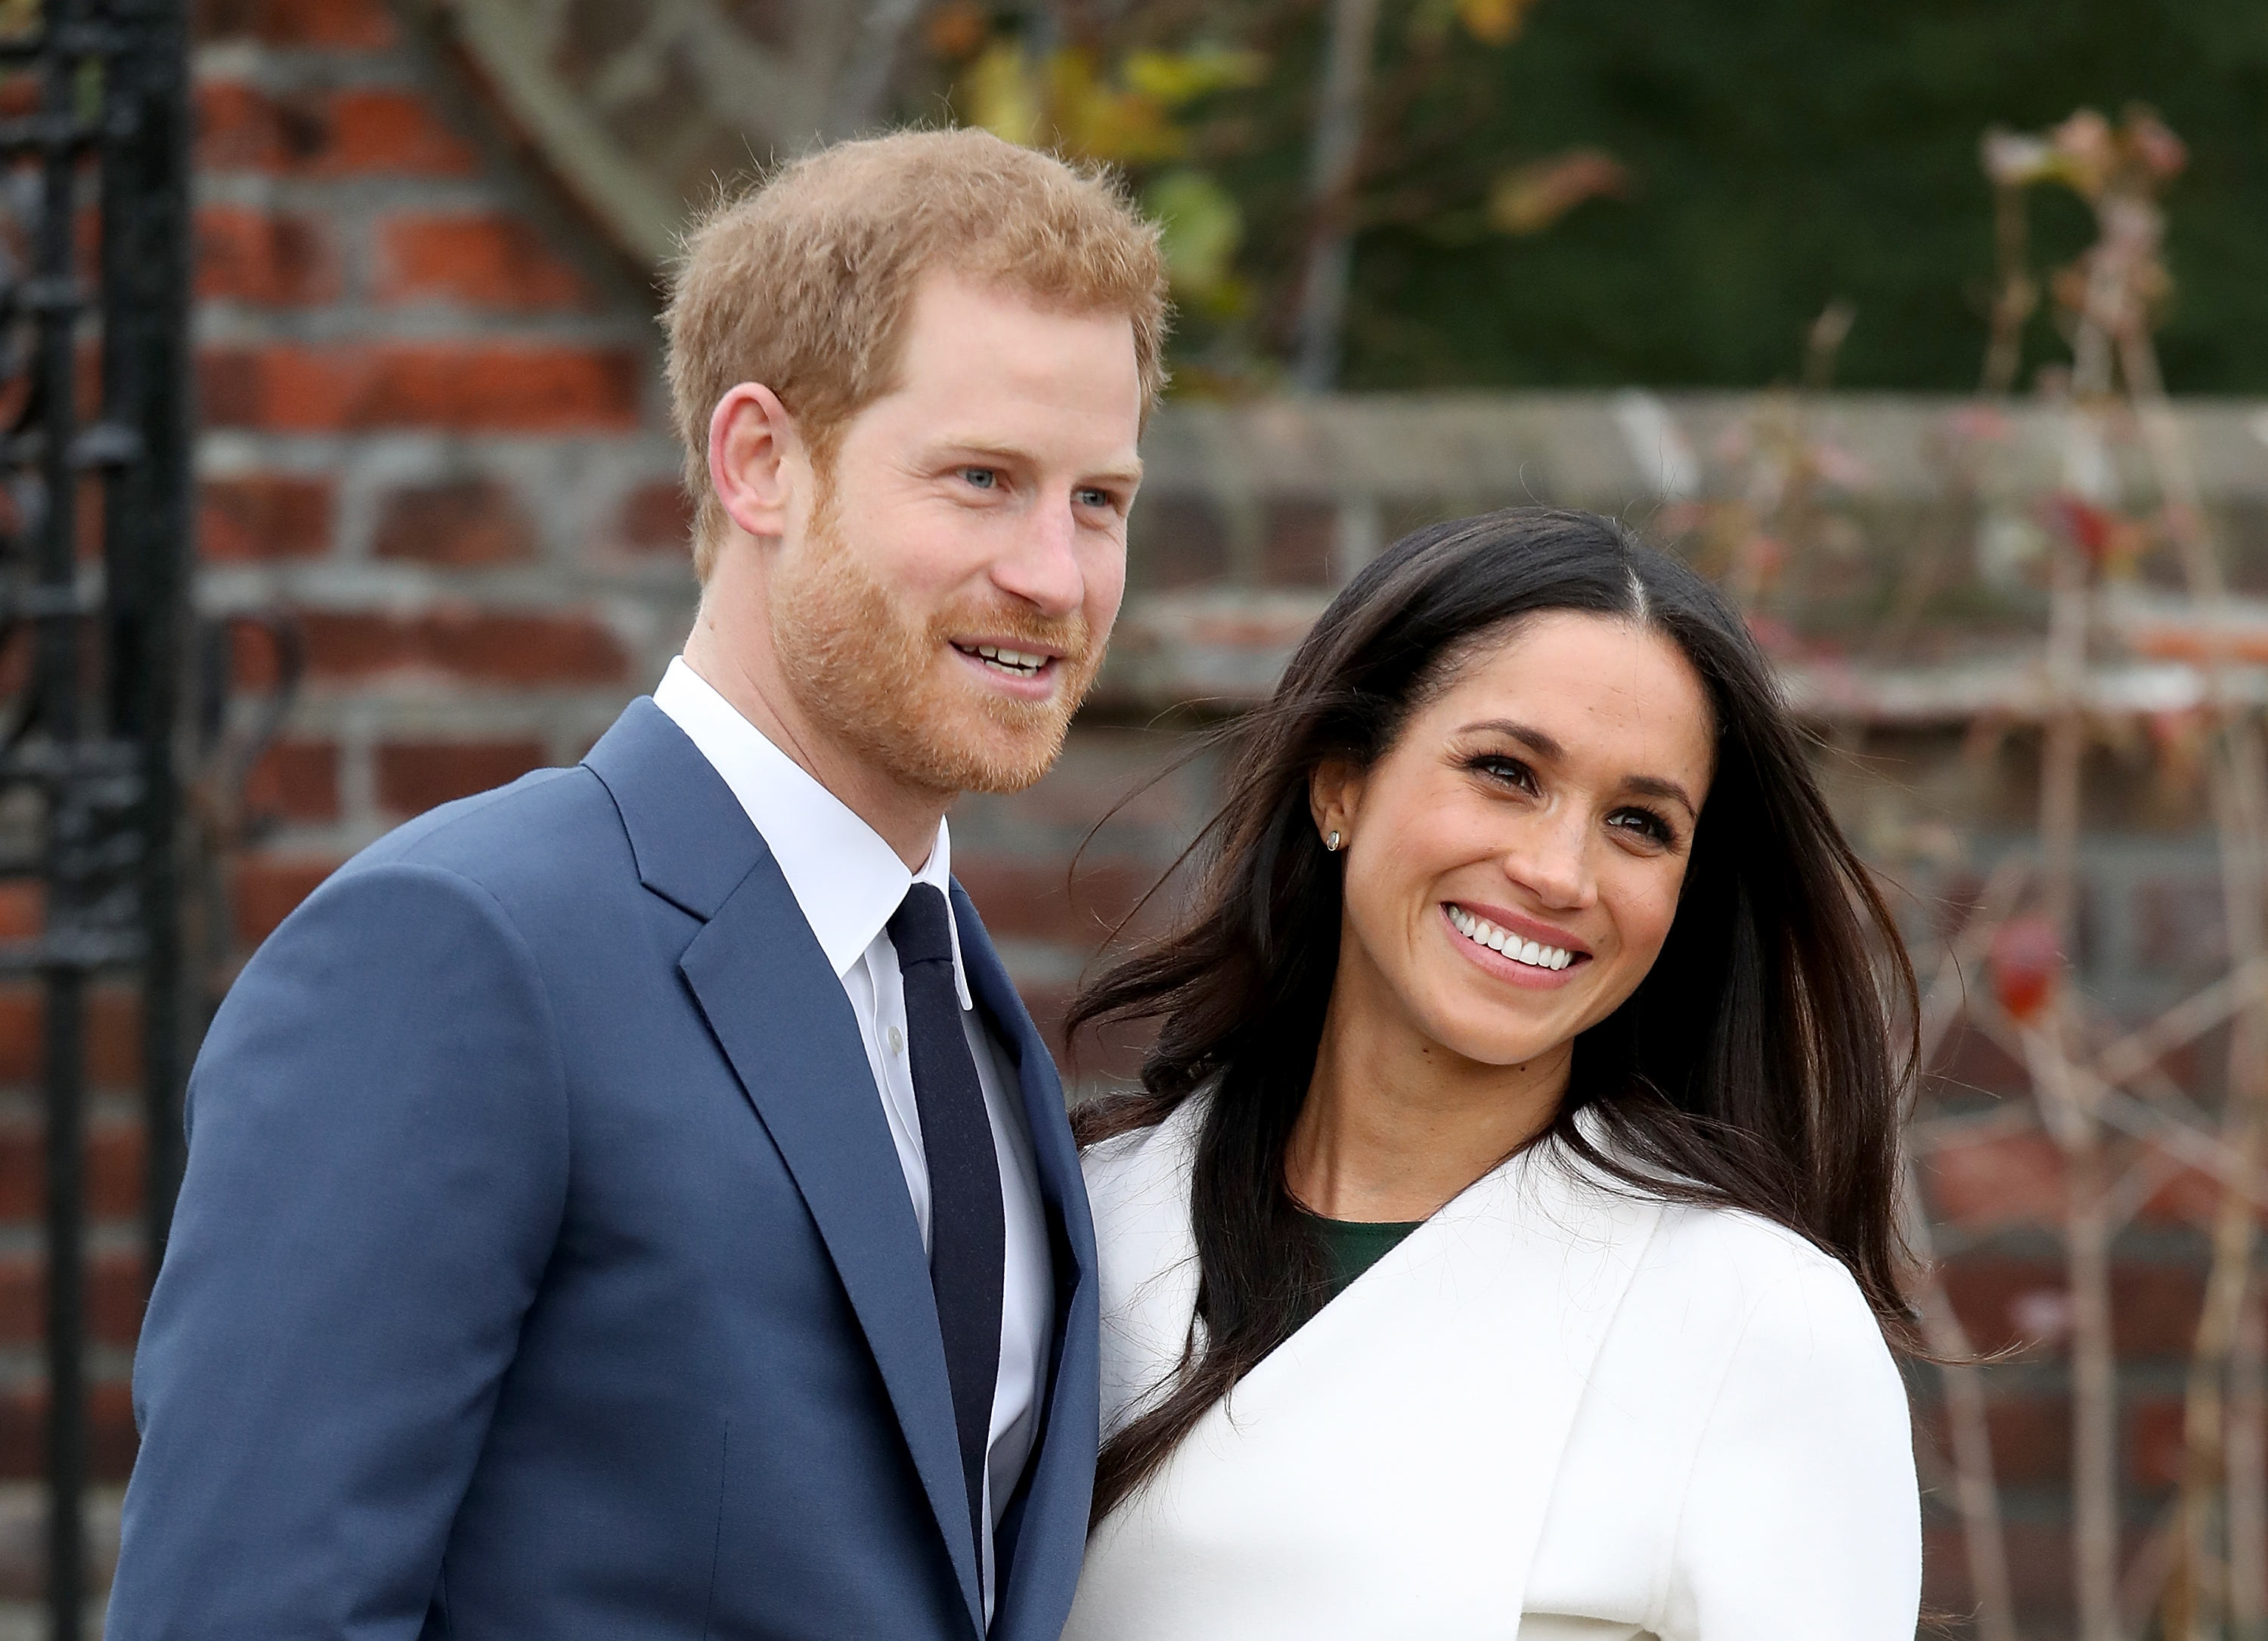 """Candace Owens says Prince Harry is """"losing his soul"""" to Meghan Markle, filming """"hostage videos"""""""